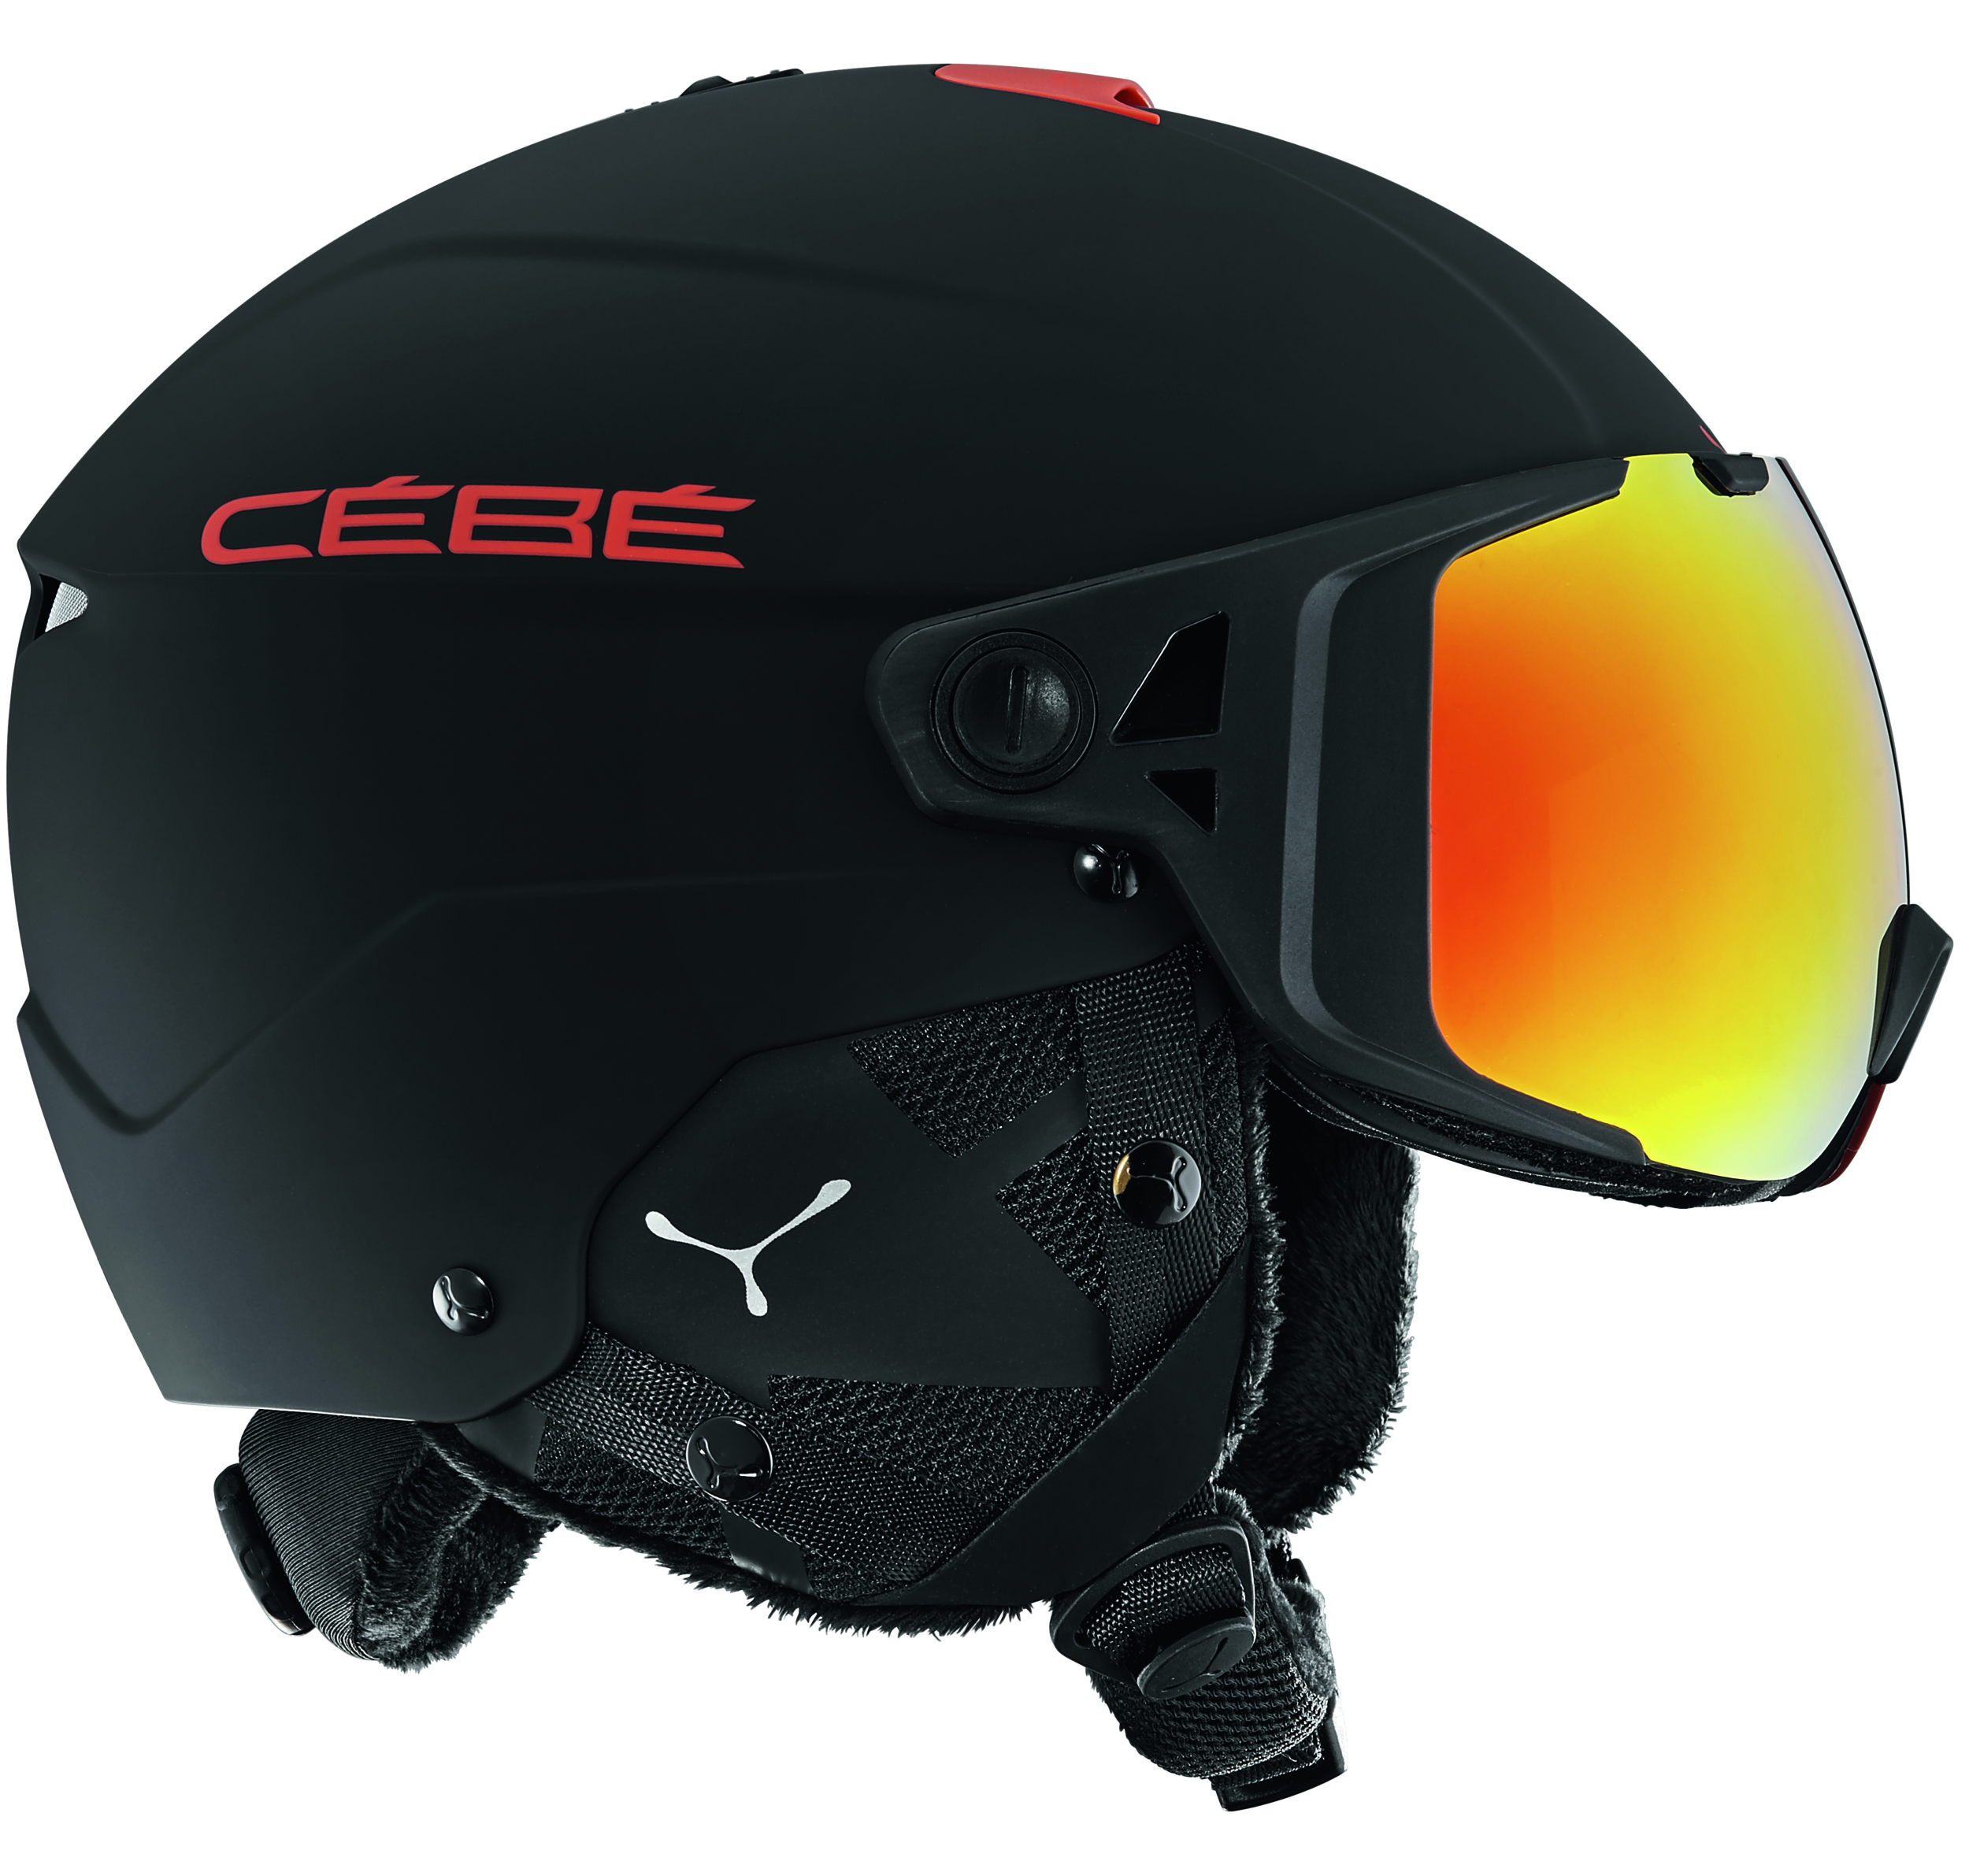 casque de ski visiere interchangeable cebe element visor. Black Bedroom Furniture Sets. Home Design Ideas